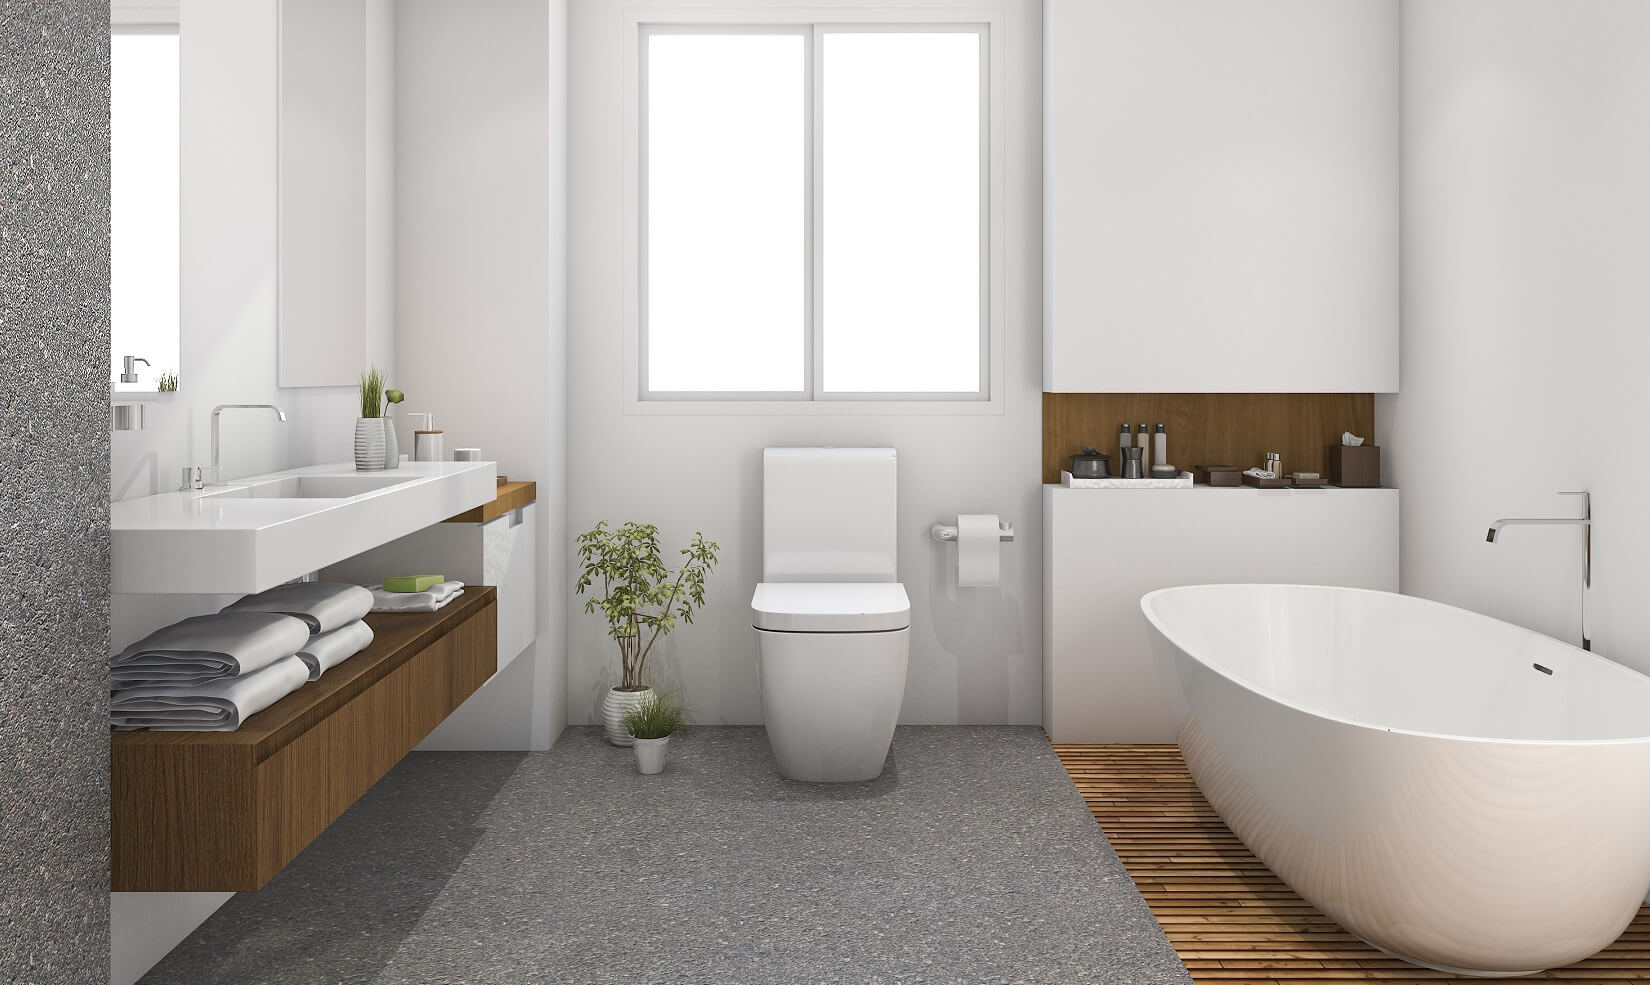 How to clean bathrooms